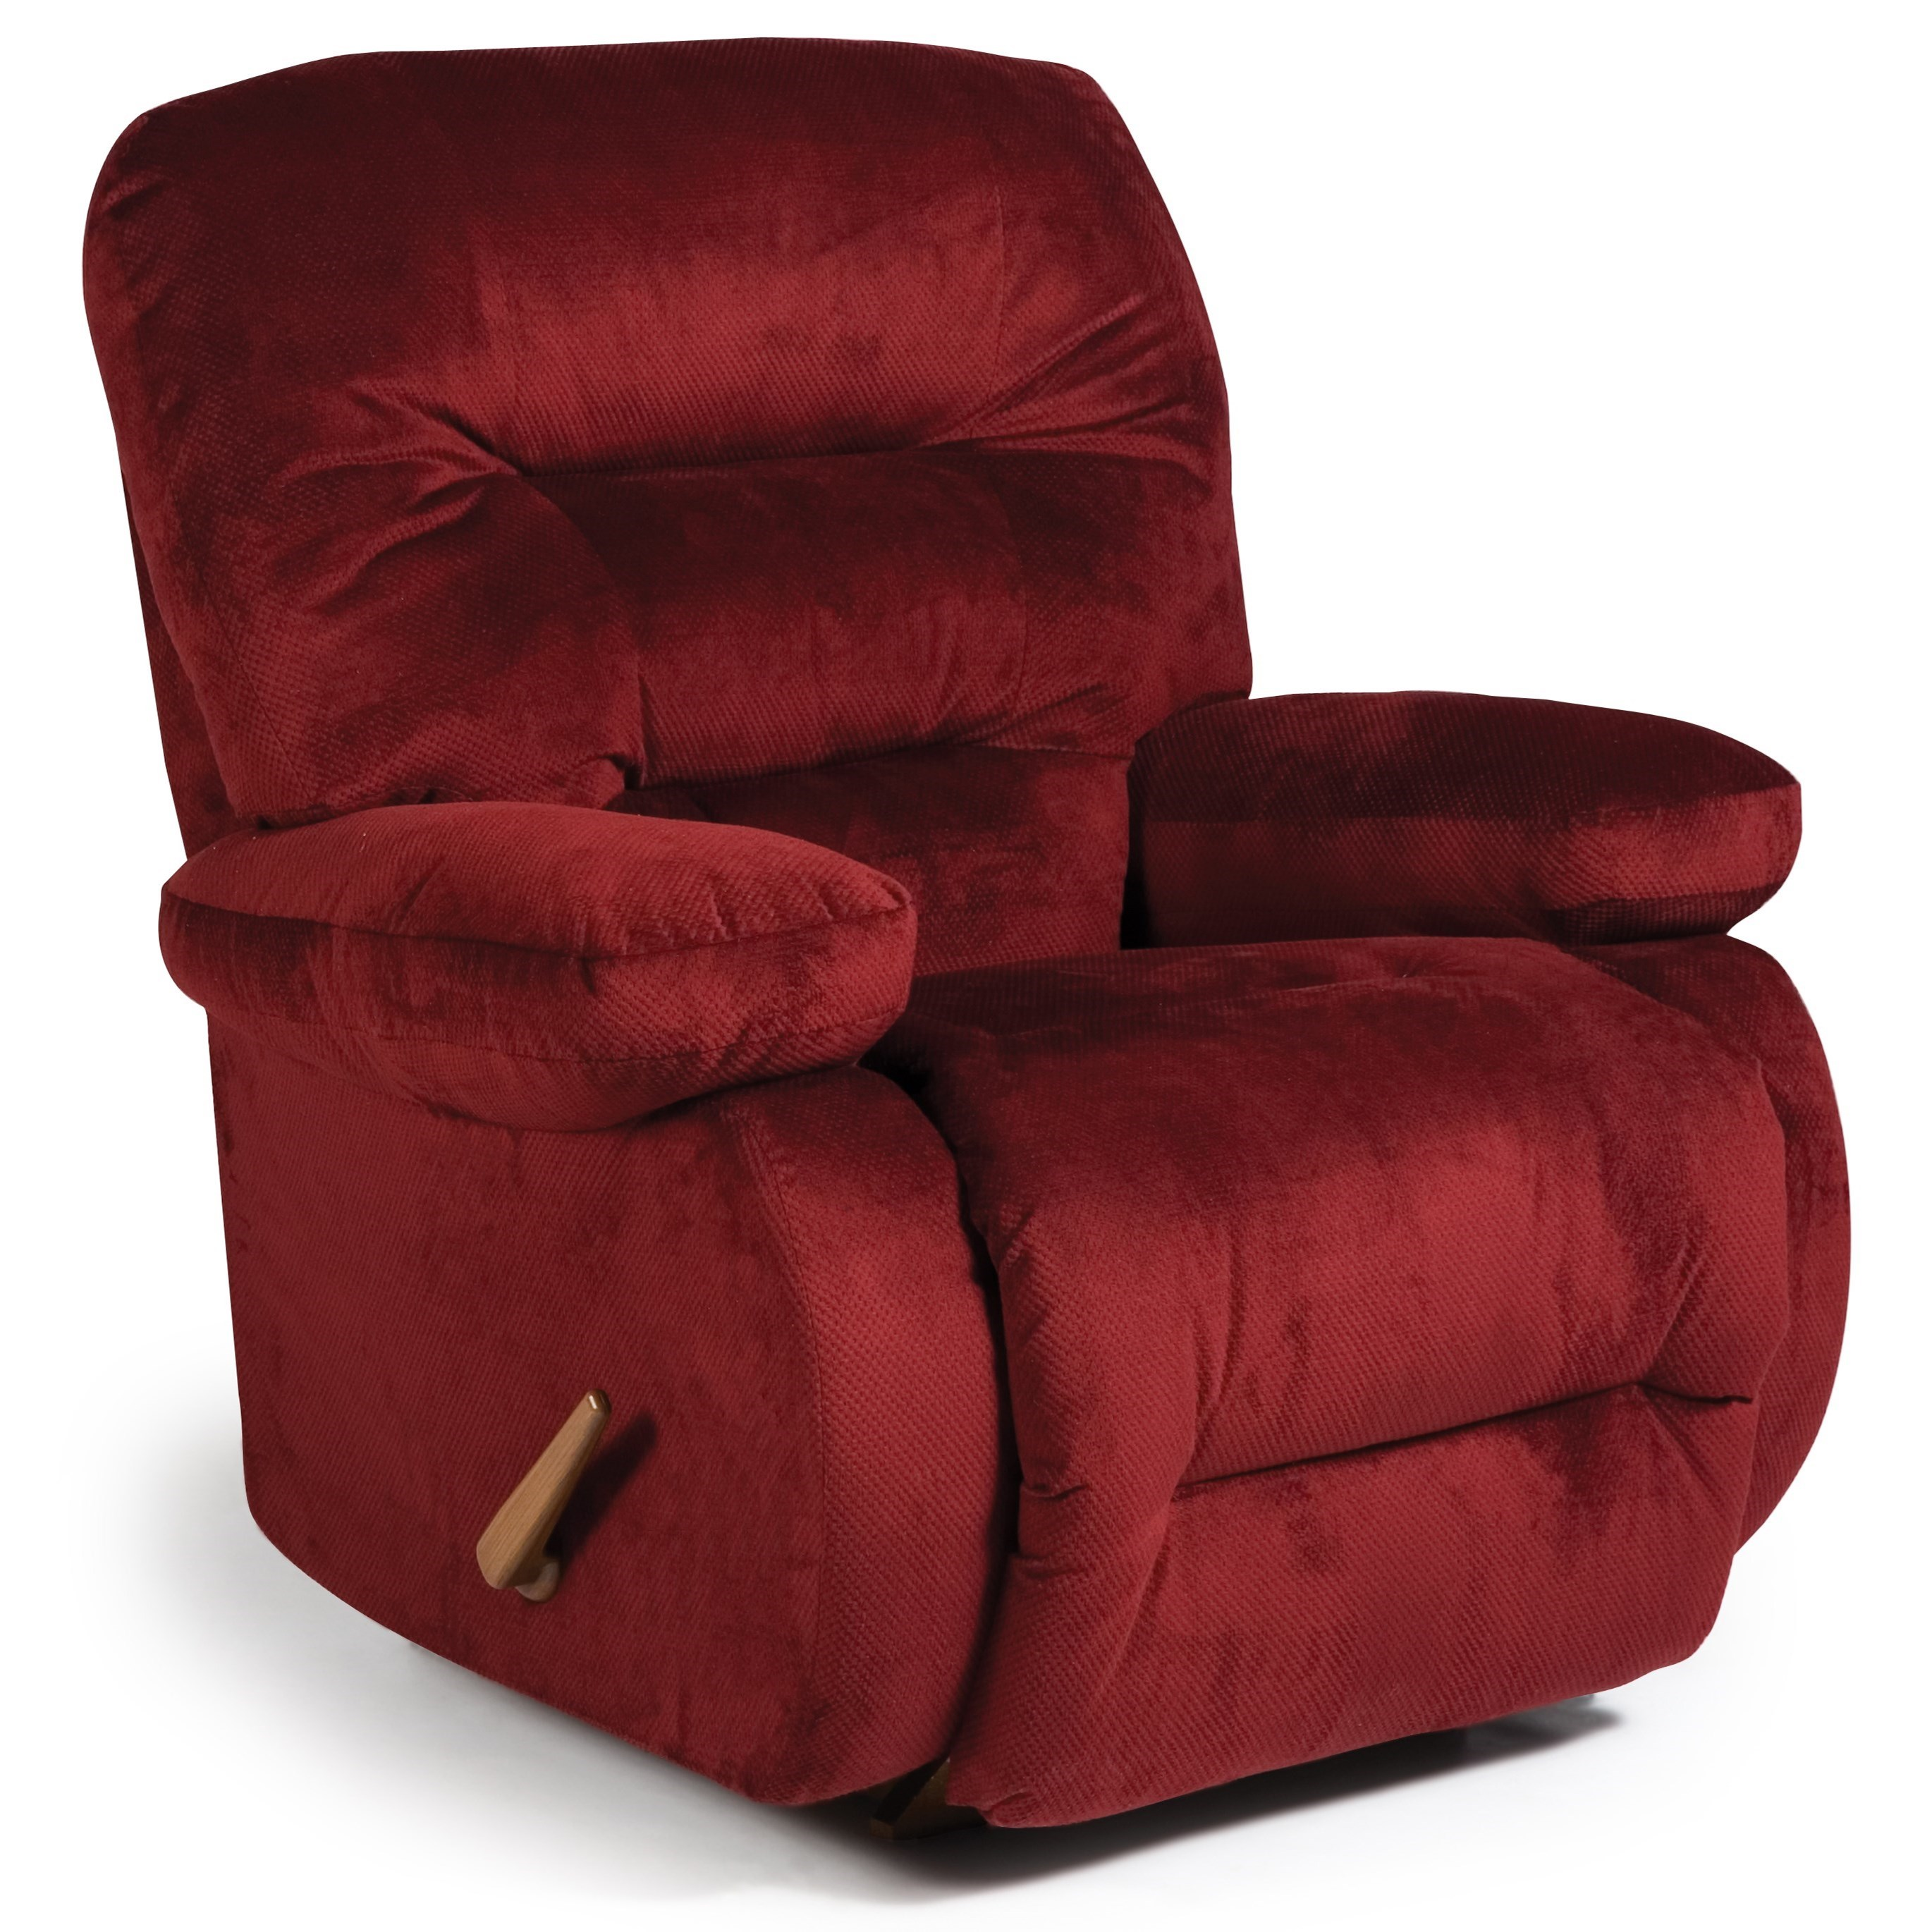 Medium Recliners Maddox Rocker Recliner by Best Home Furnishings at Mueller Furniture